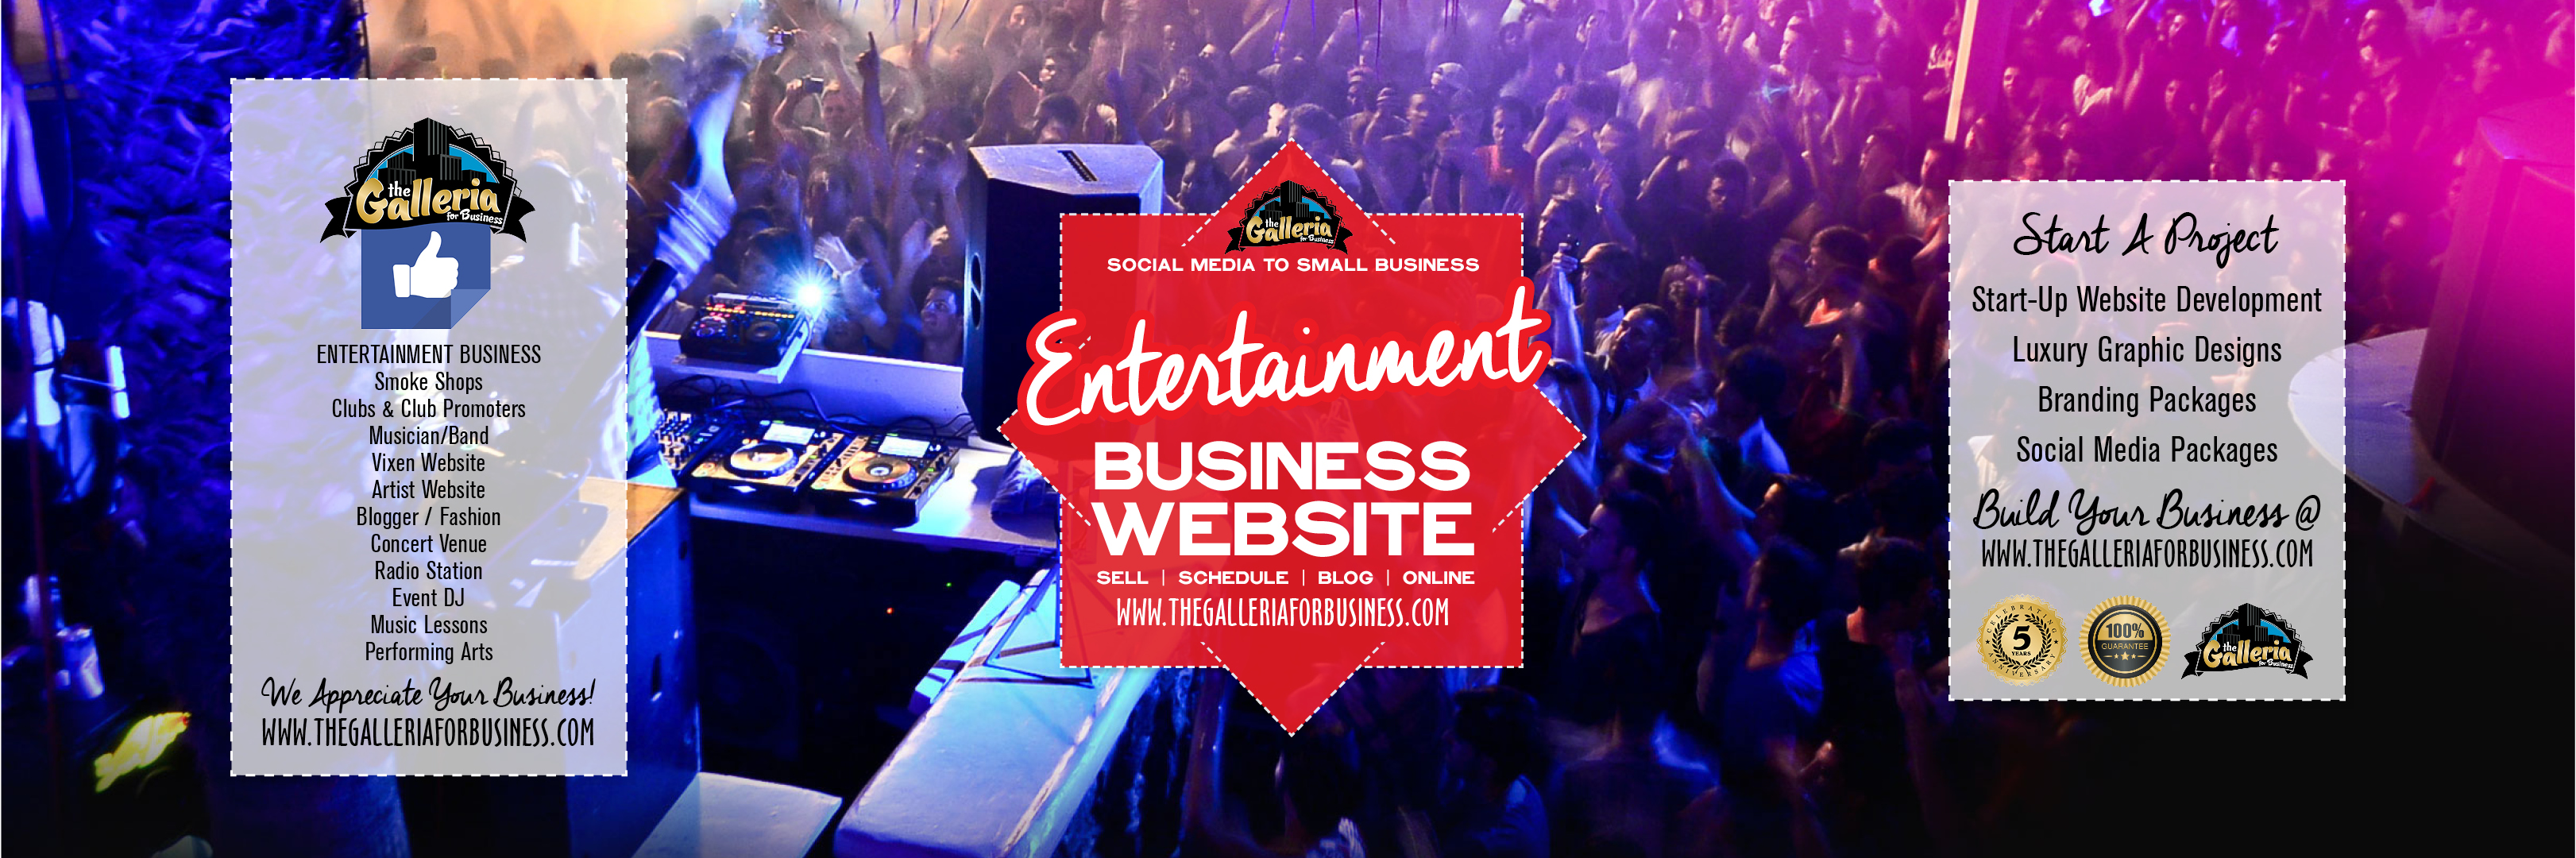 Entertainment Business